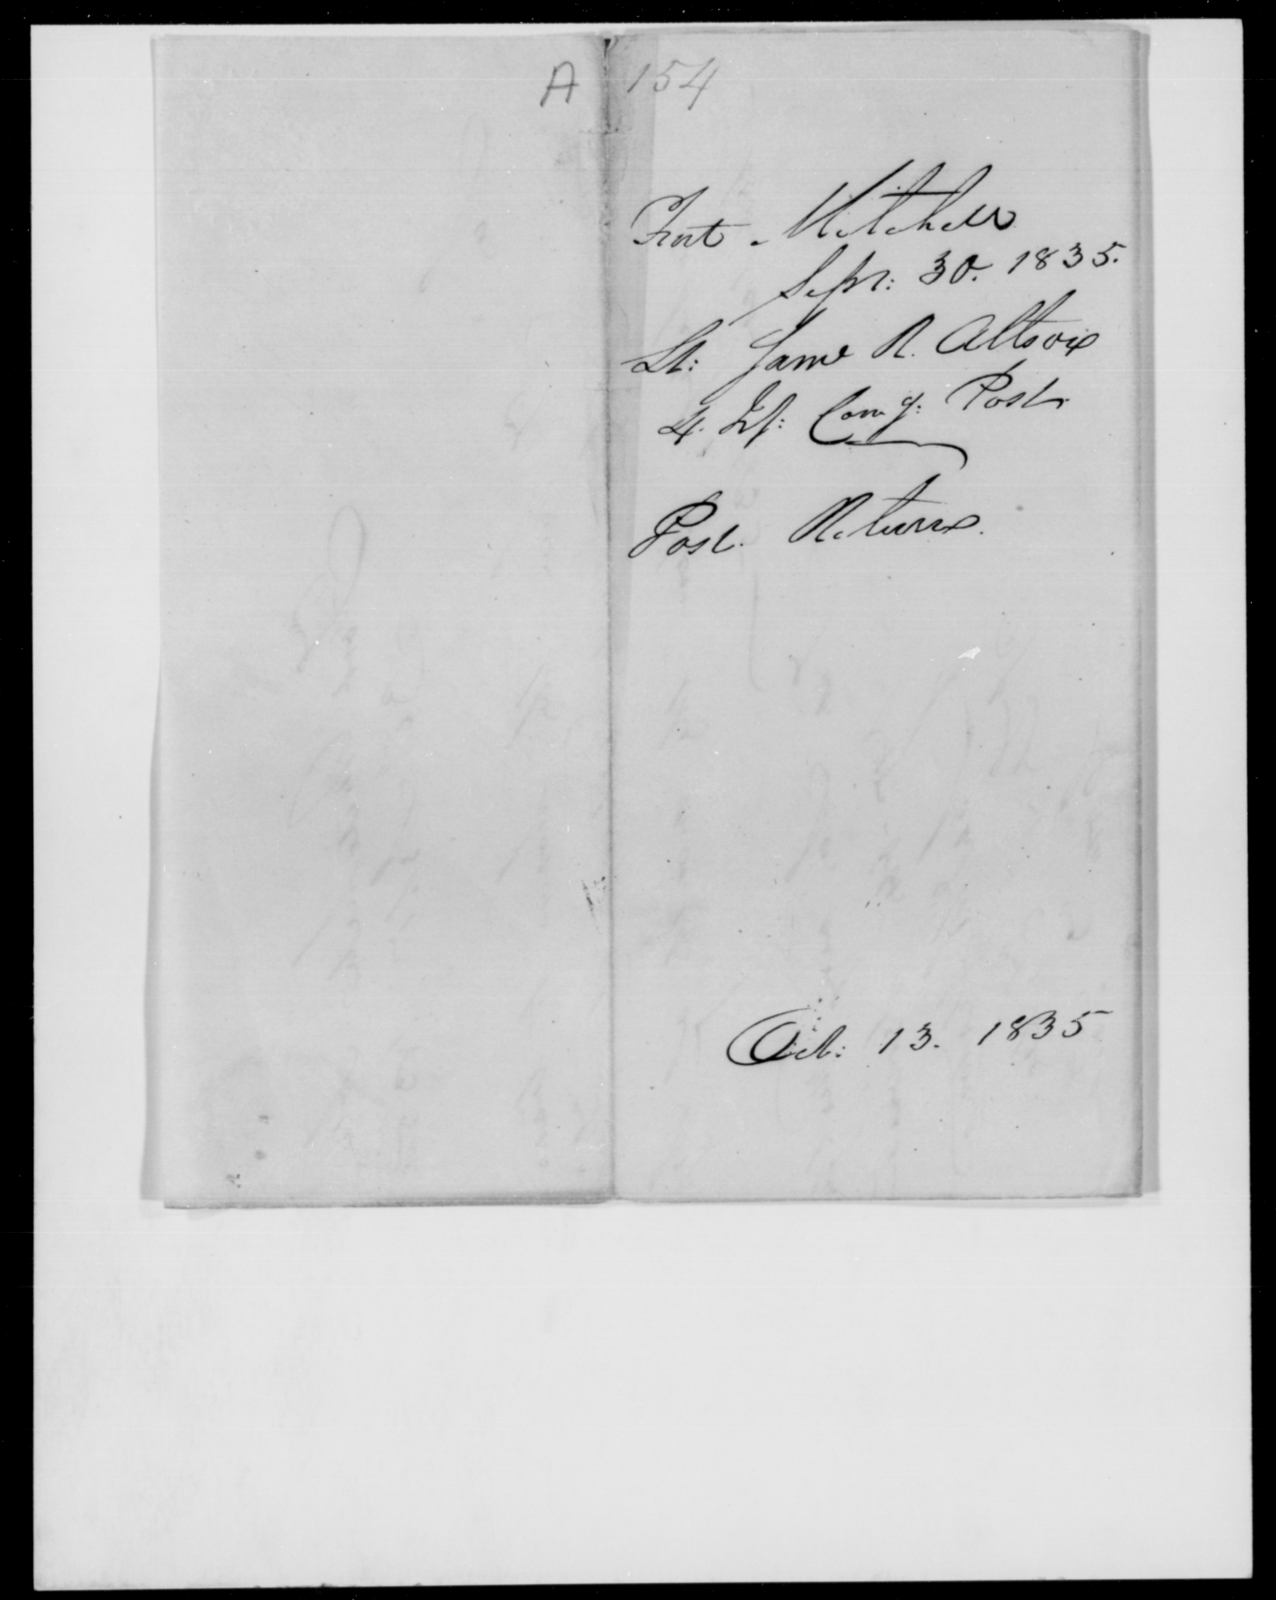 Allston, Same R - State: Alabama - Year: 1835 - File Number: A154